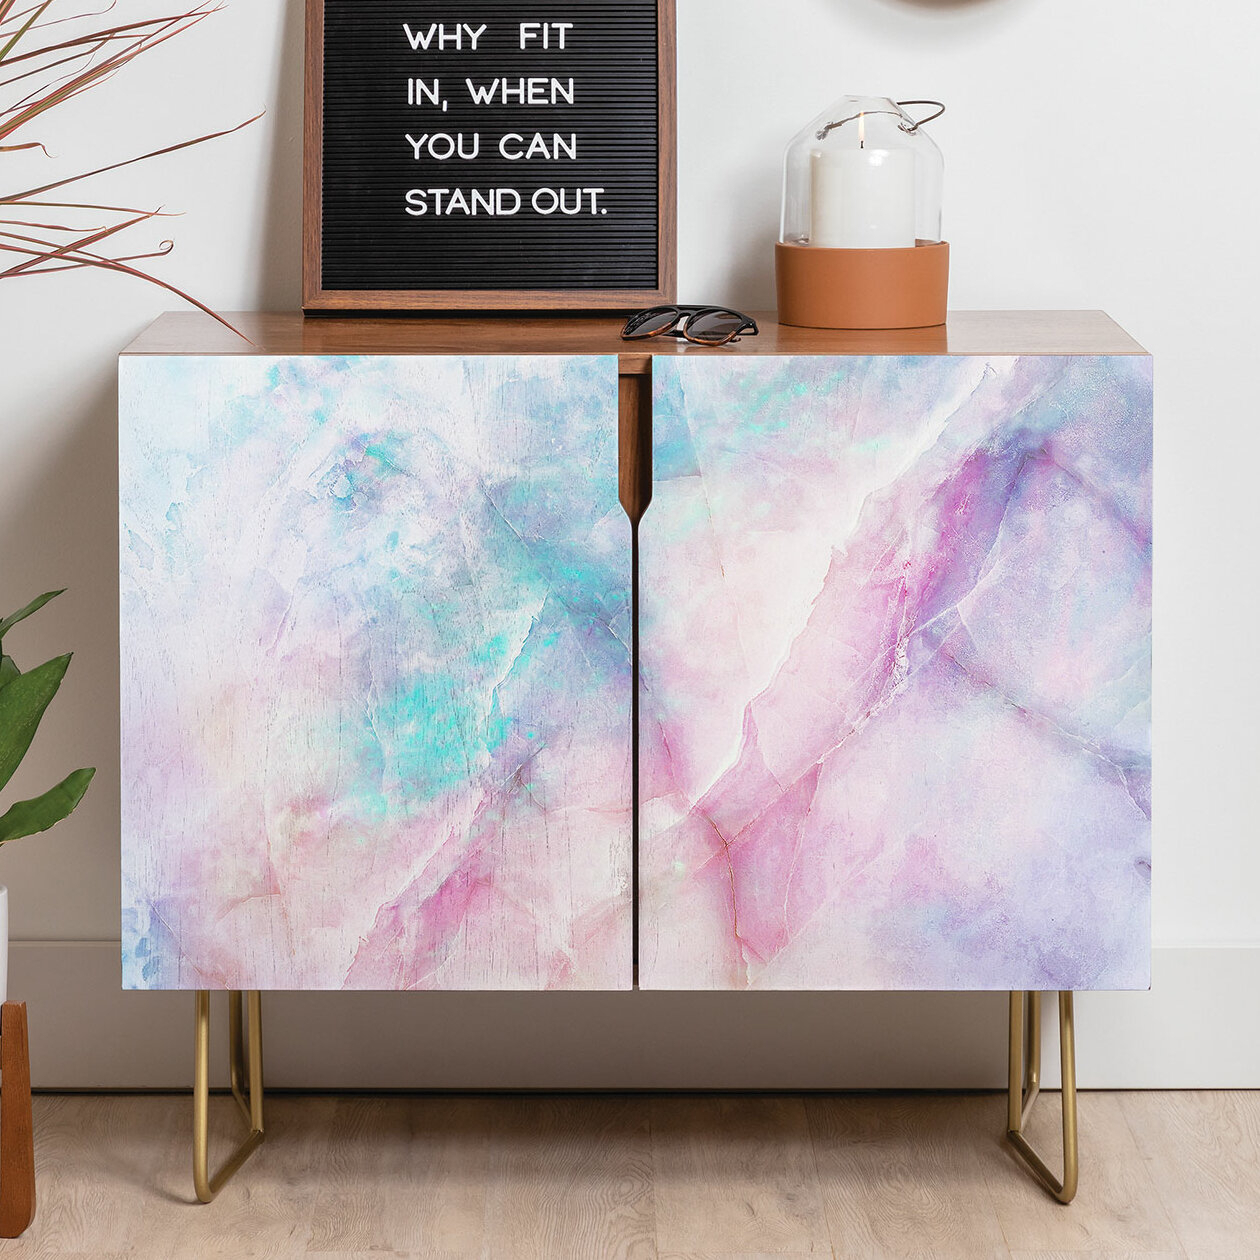 Emanuela Iridescent Marble Credenza Within Strokes And Waves Credenzas (View 13 of 30)